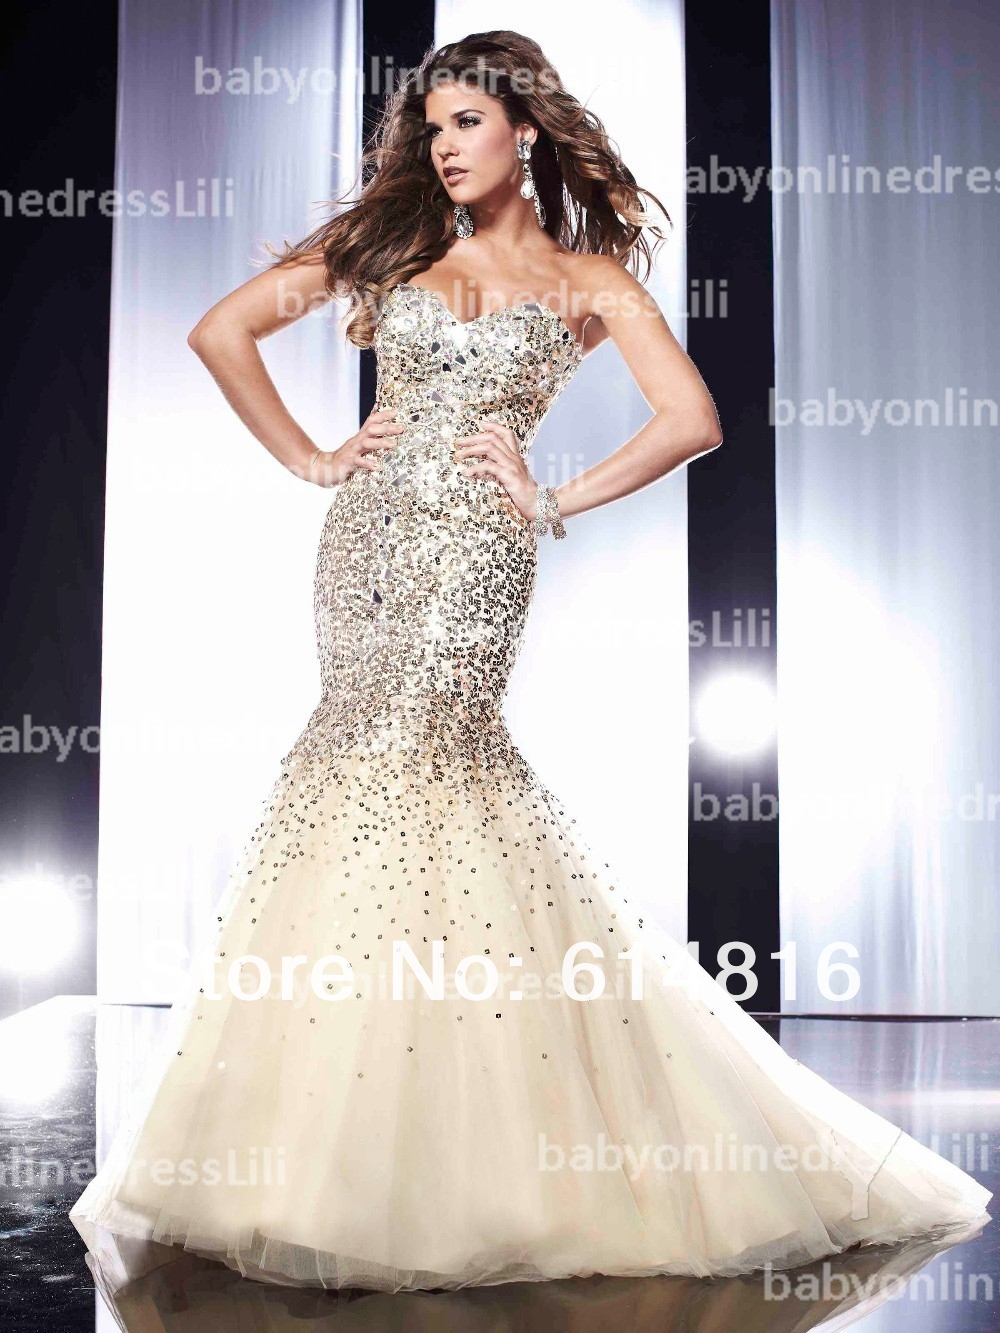 Free Shipping Mermaid Sweetheart Organza Satin Sequined Prom Dresses 2014 Evening Dresses With Crystals V41-in Evening Dresses from Apparel & Accessories on Aliexpress.com